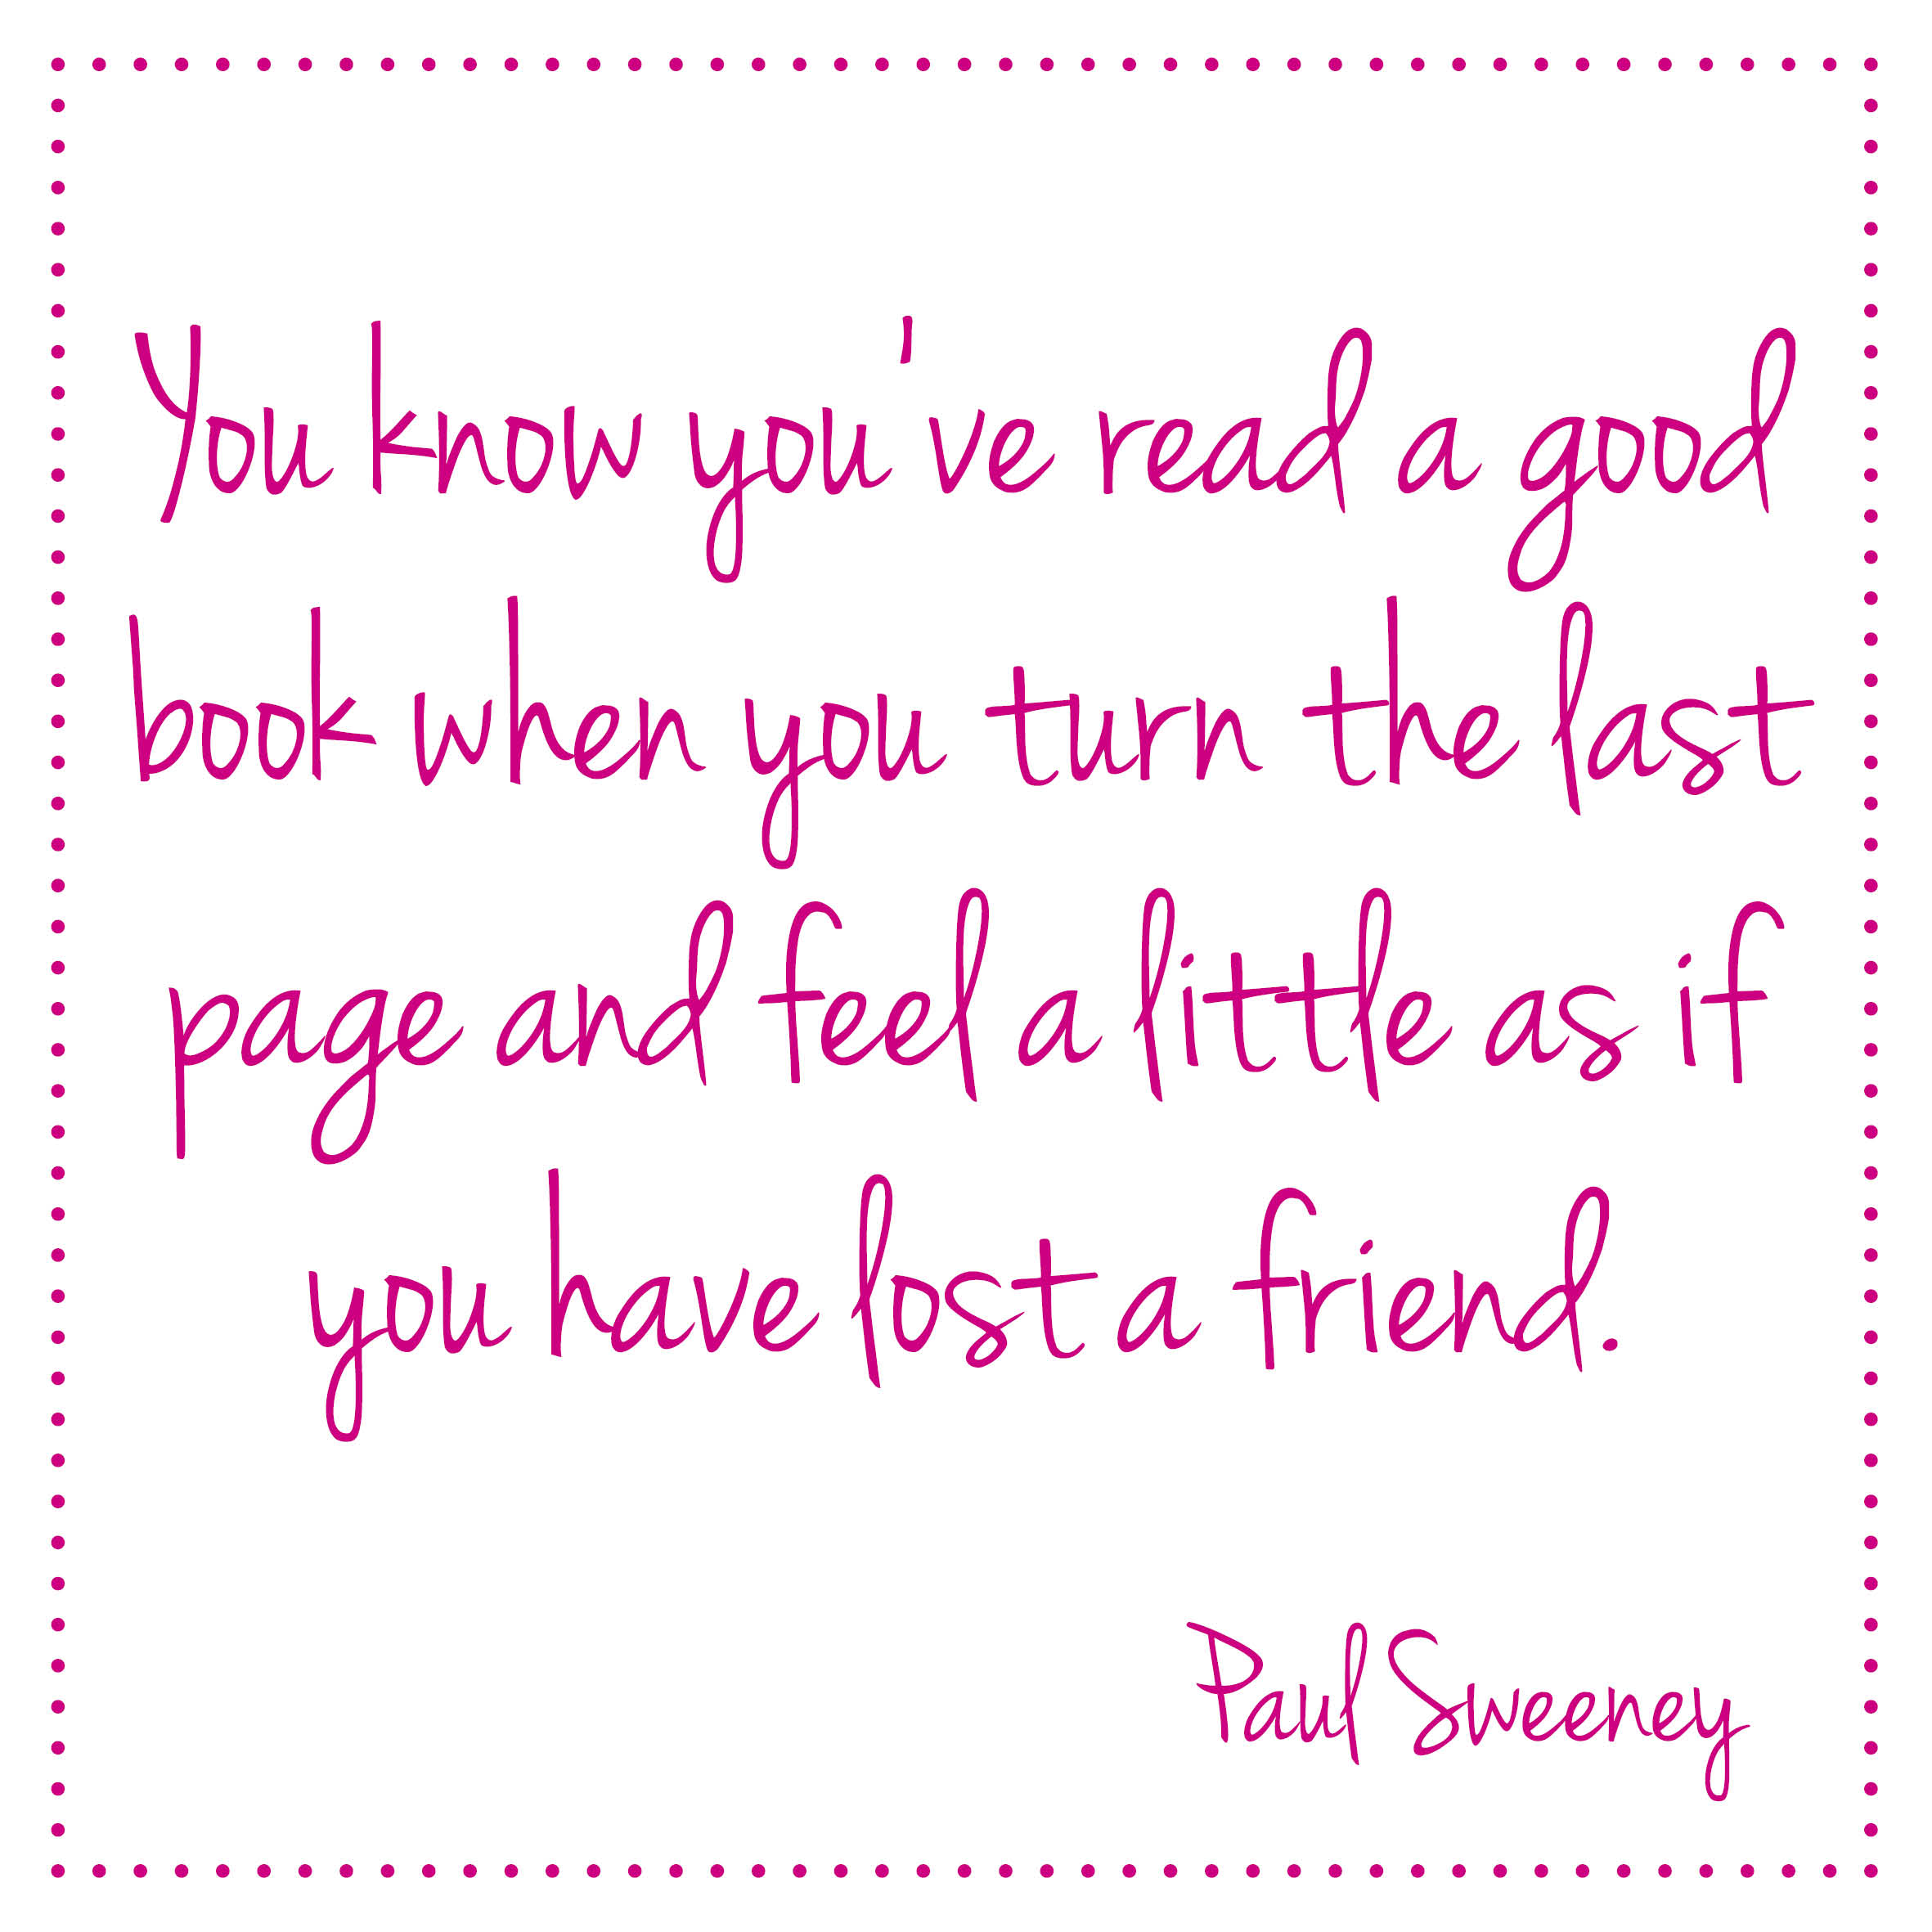 You know you've read a good book when you turn the last page and feel a little as if you have lost a friend. Paul Sweeney   Bladzijde26